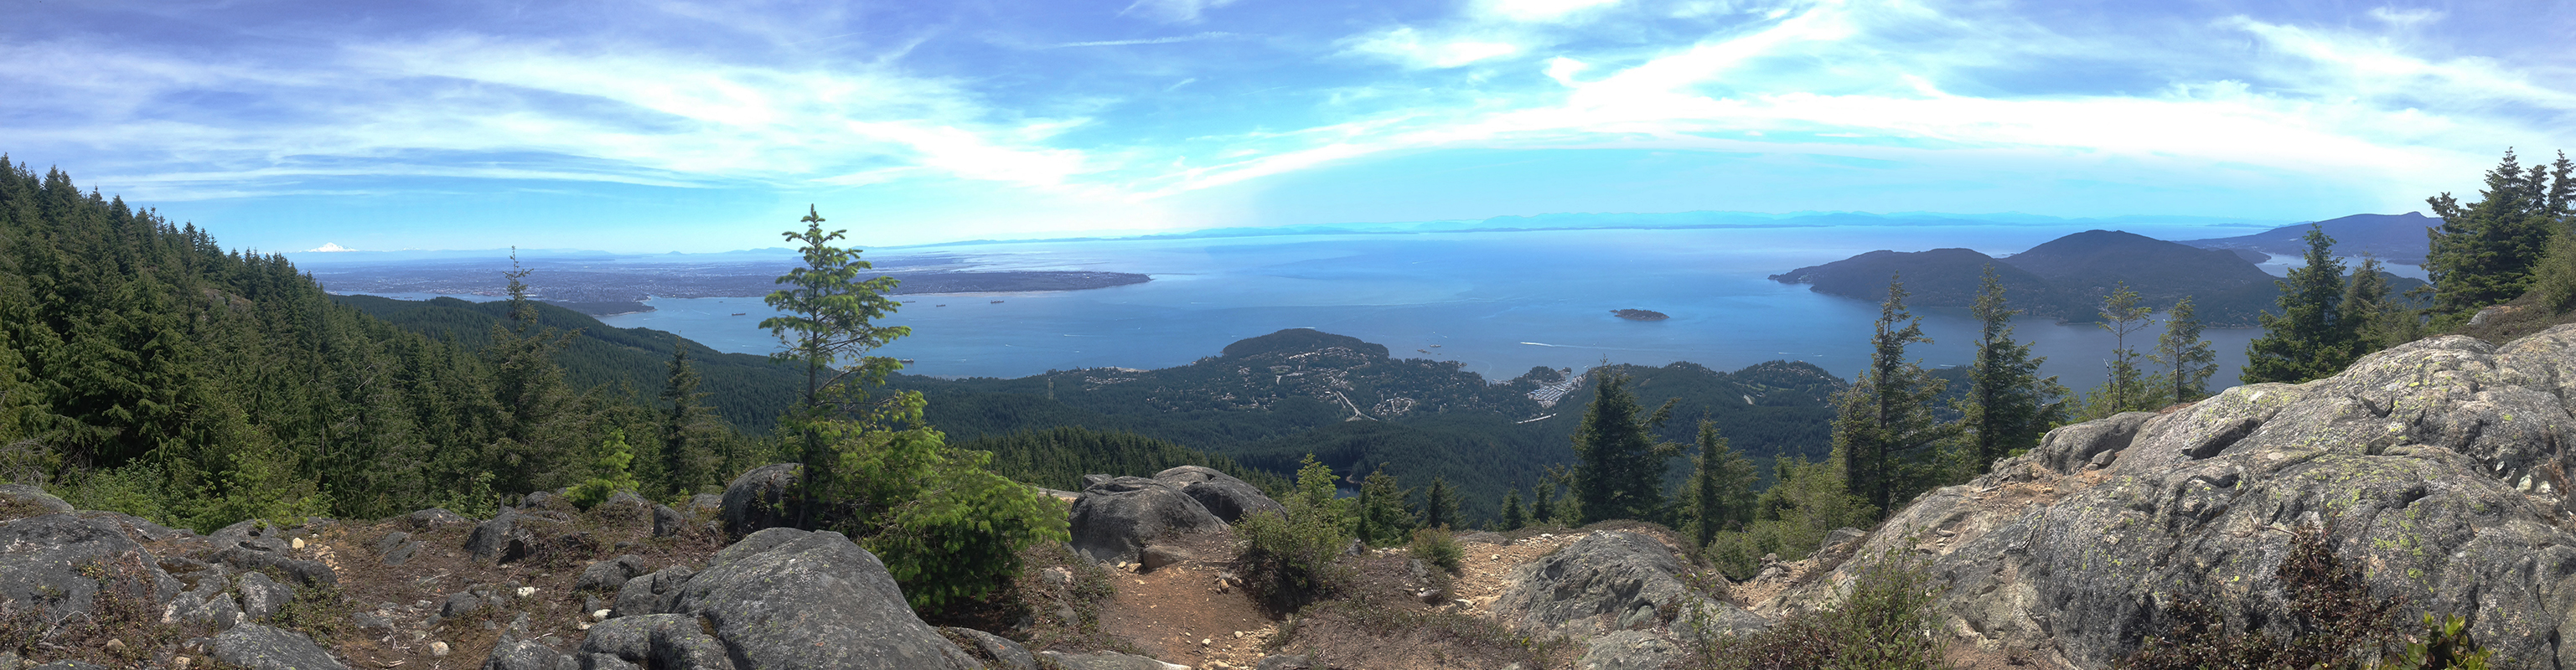 photograph from atop black mountain looking towards vancouver island and the pacific ocean